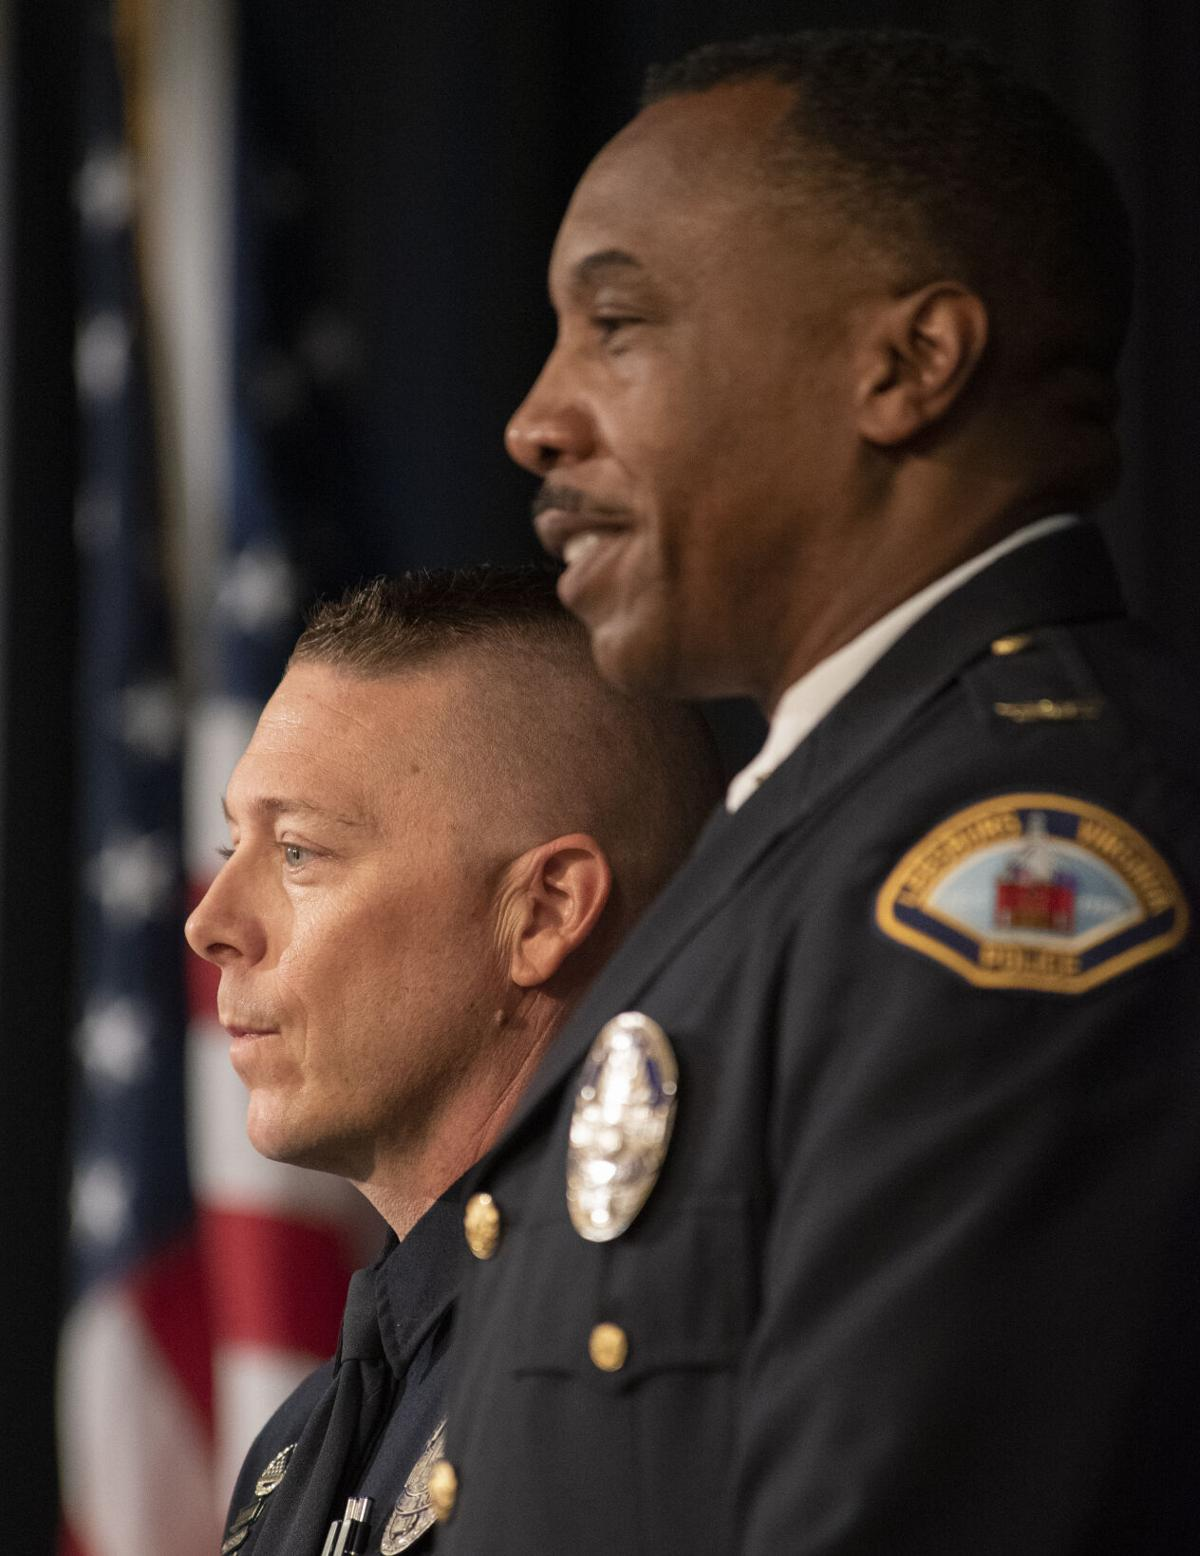 Officer Josh Carter – Chief Gregory Brown